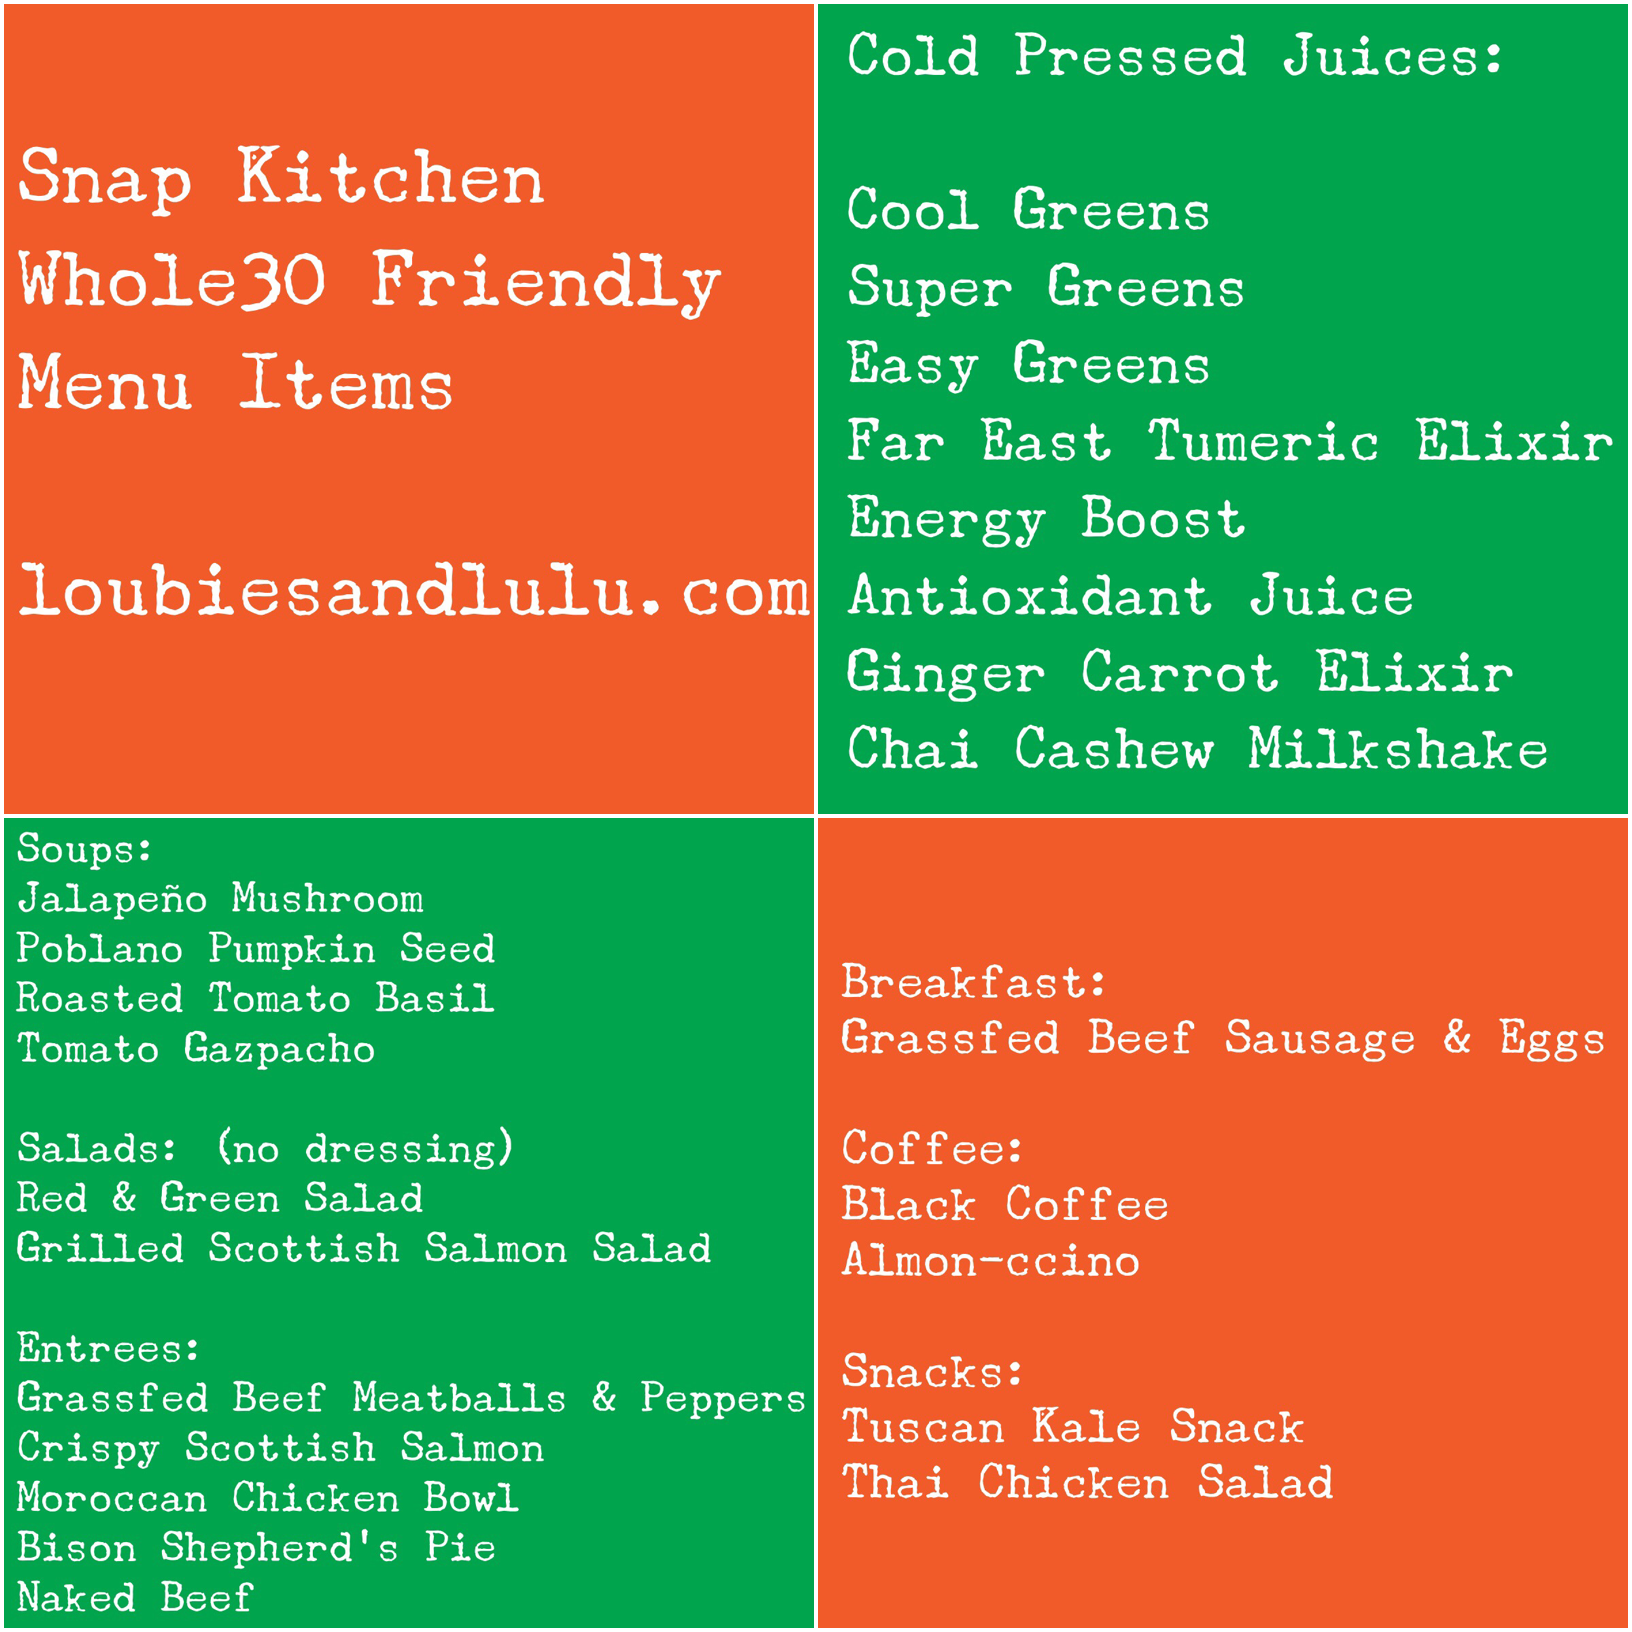 Ordinaire Snap Kitchen Whole30 Friendly Items